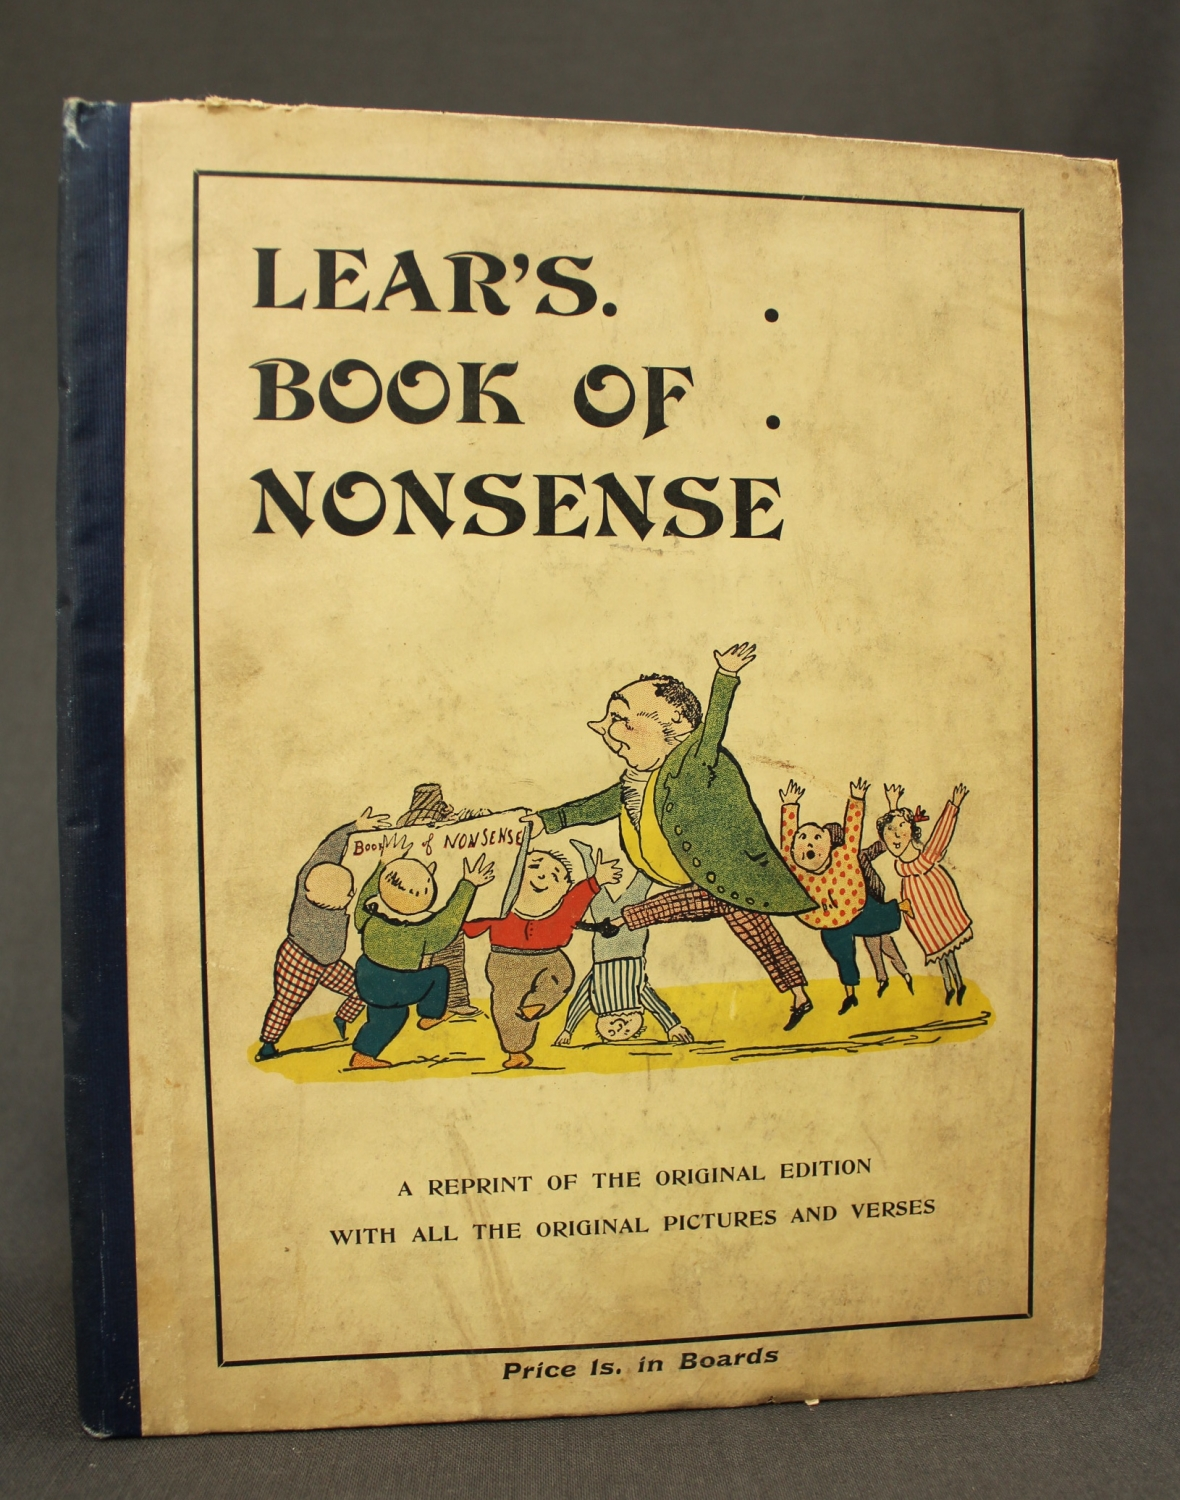 Lear's Book of Nonsense